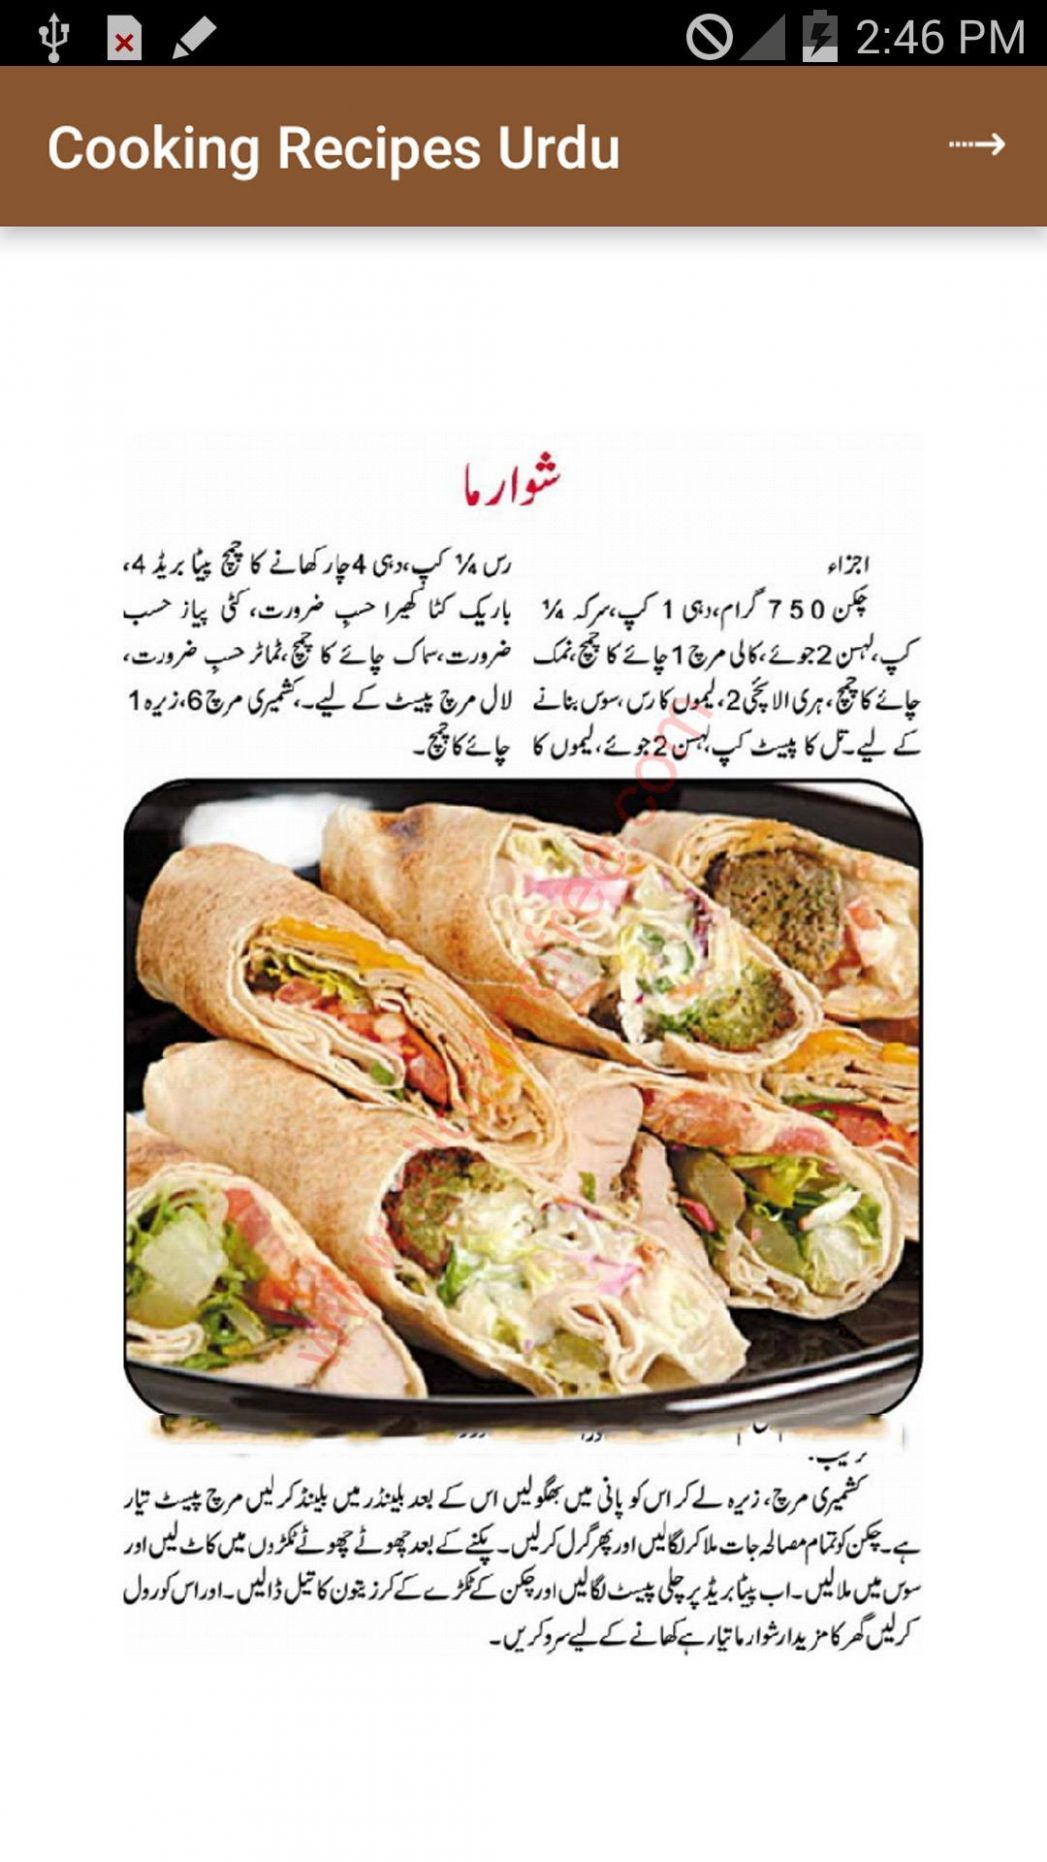 Cooking Recipes in Urdu for Android - APK Download - Recipes For Urdu